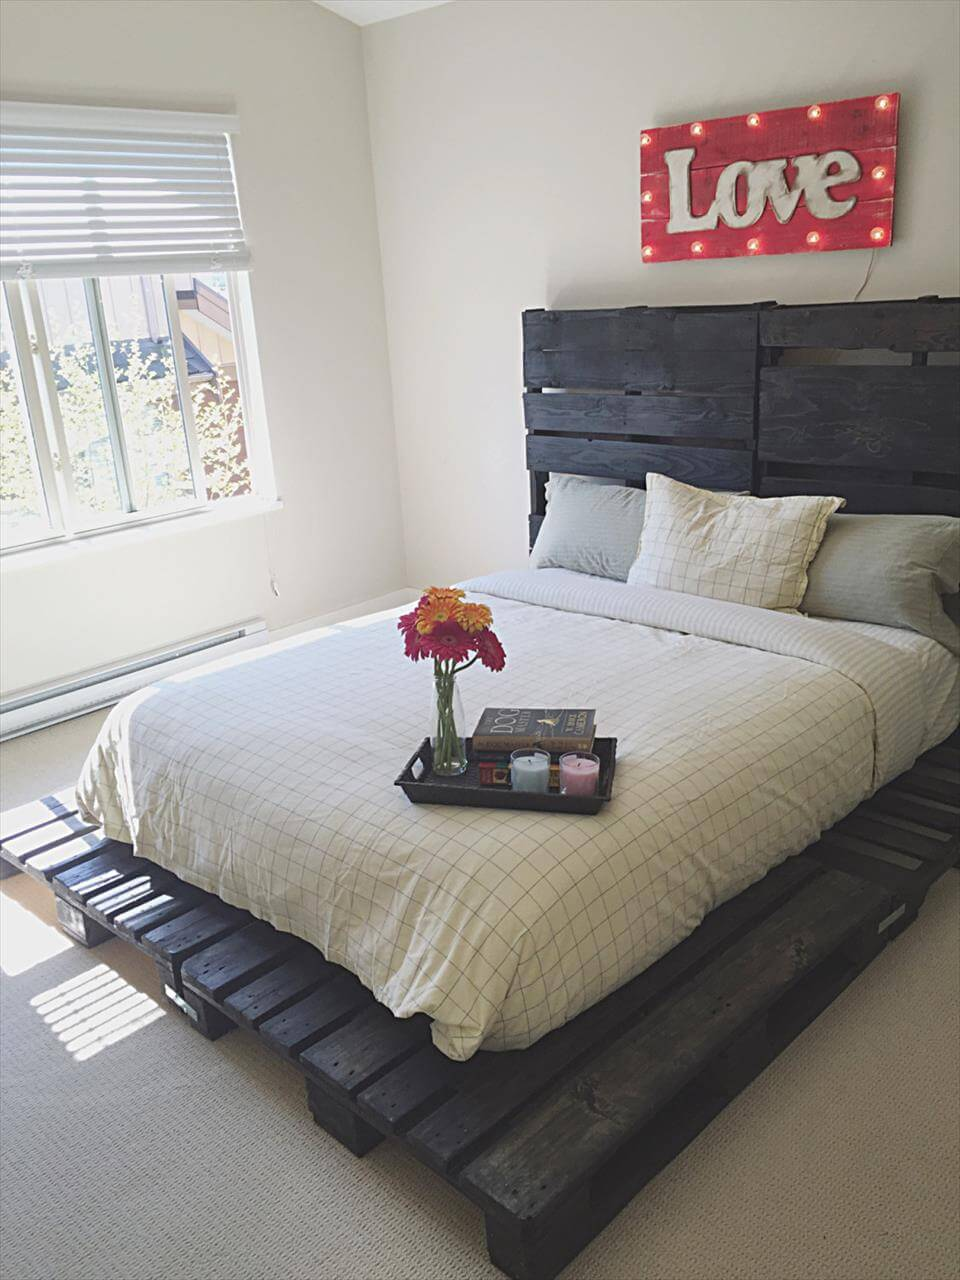 Wooden Pallet Bed out of only Pallets - Pallets Pro on Bed Pallet Design  id=76198